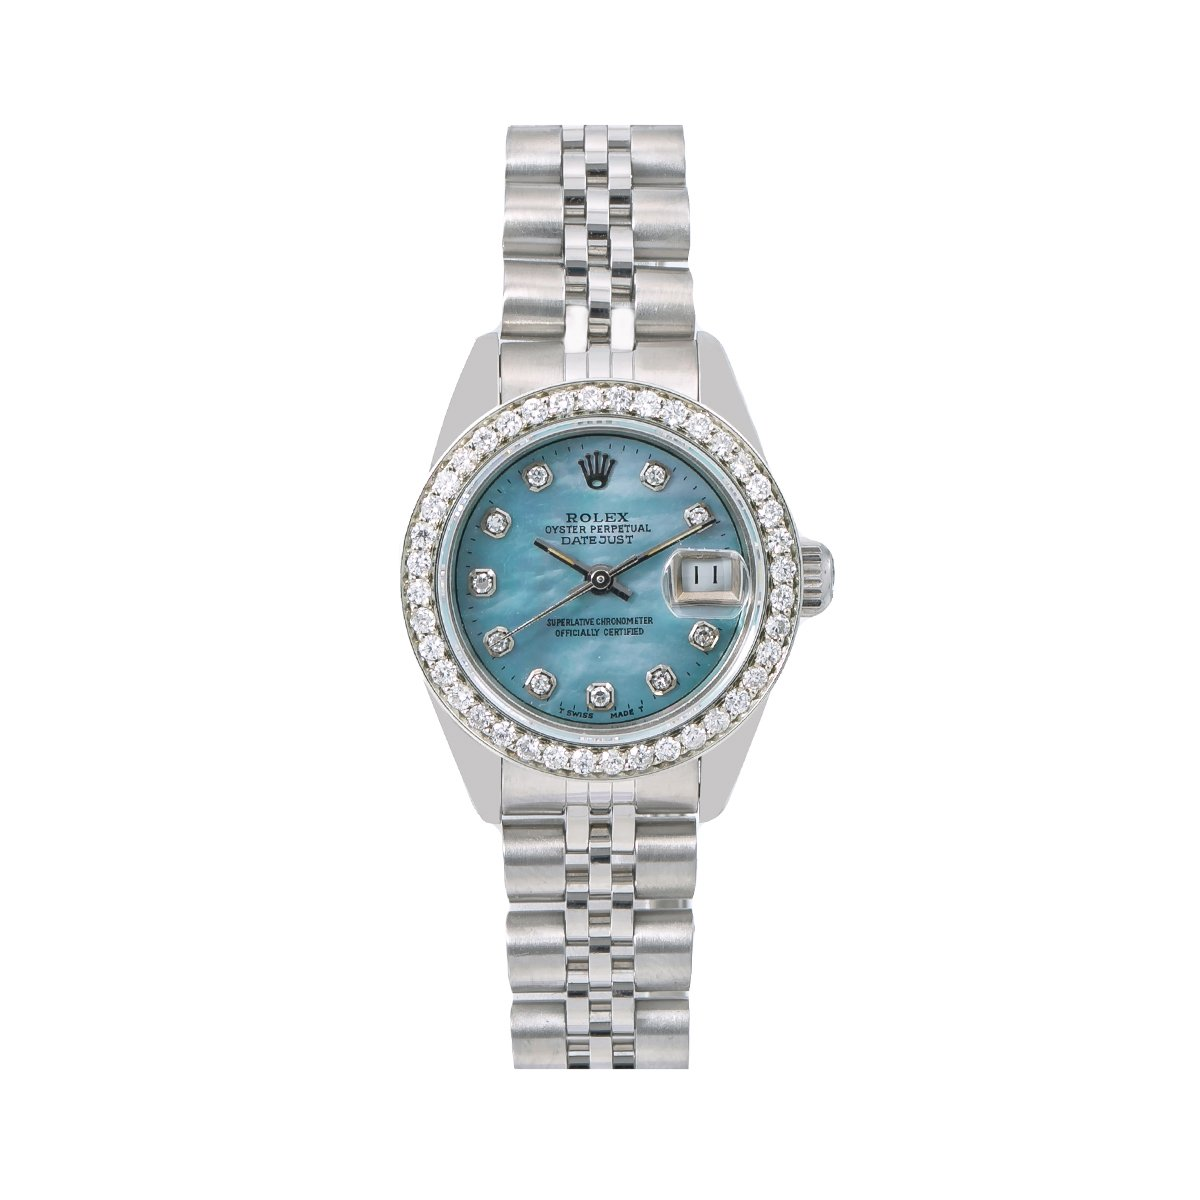 Rolex Oyster Perpetual Lady Datejust Diamond Bezel Watch 26mm Blue Dial 0.9ct Main Image